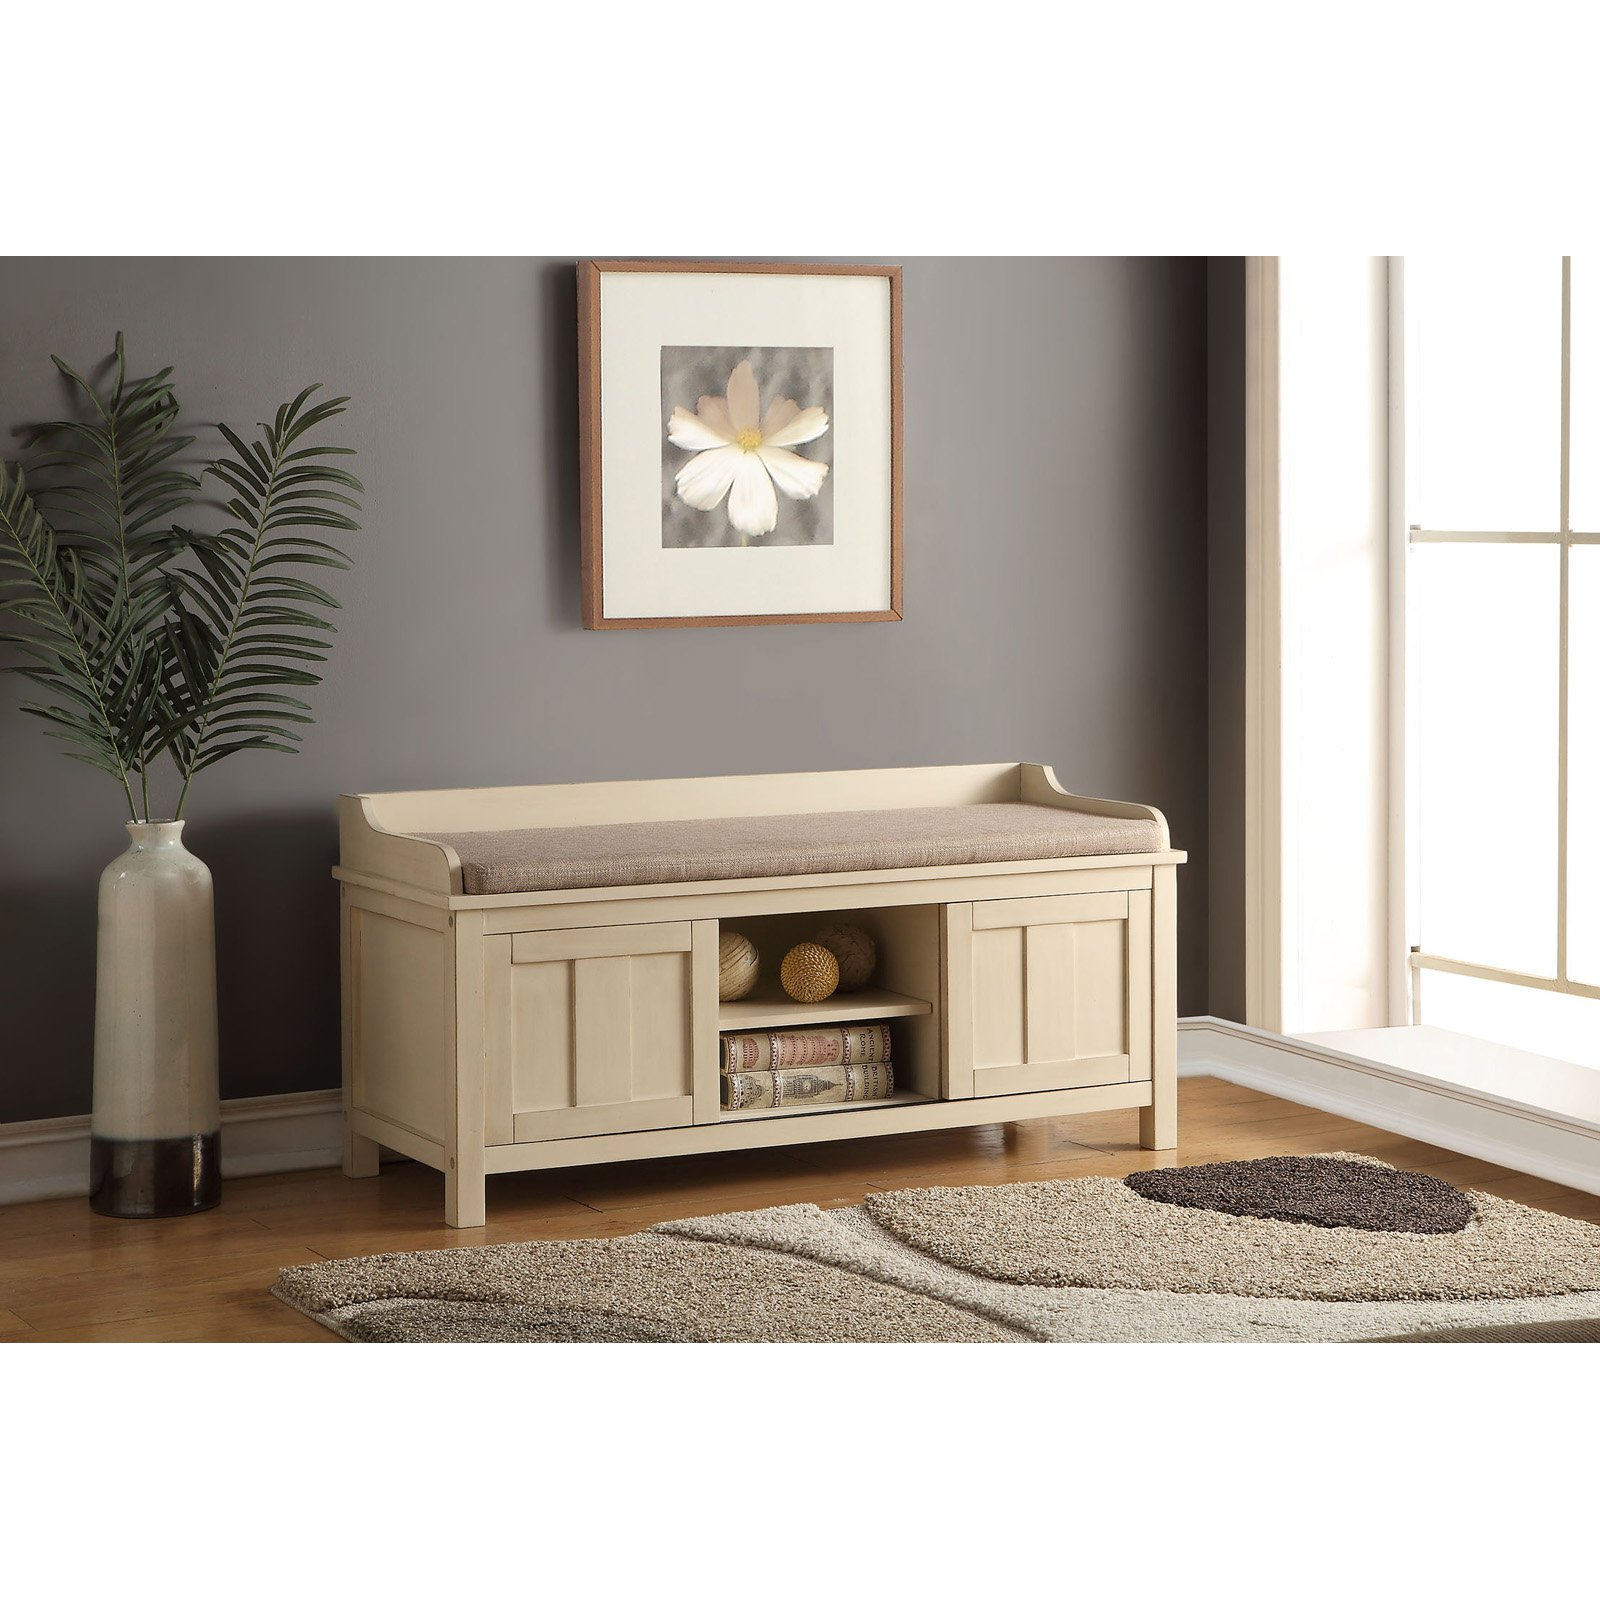 ACME Rosio Storage Bench, Fabric U0026 Cream